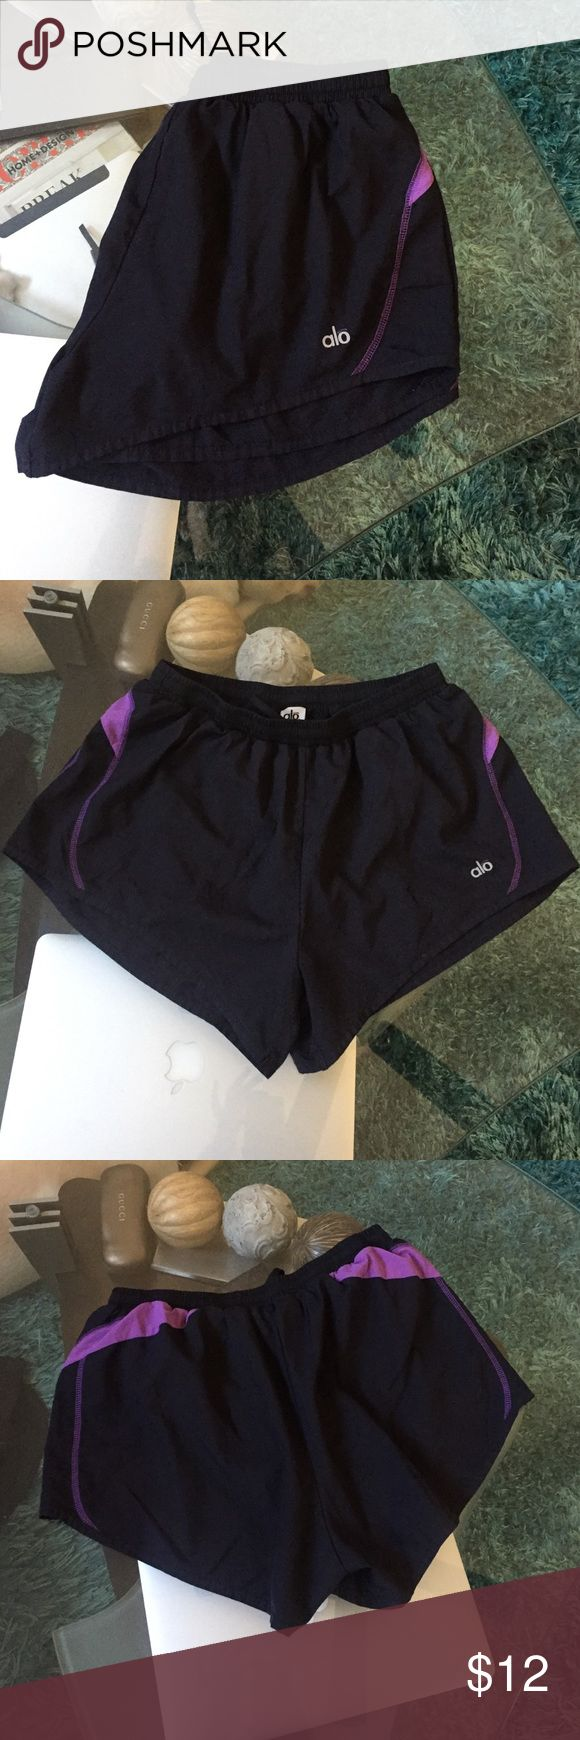 ALO yoga shorts Great condition ALO Yoga shorts size S the run big more like a size M ALO Yoga Shorts